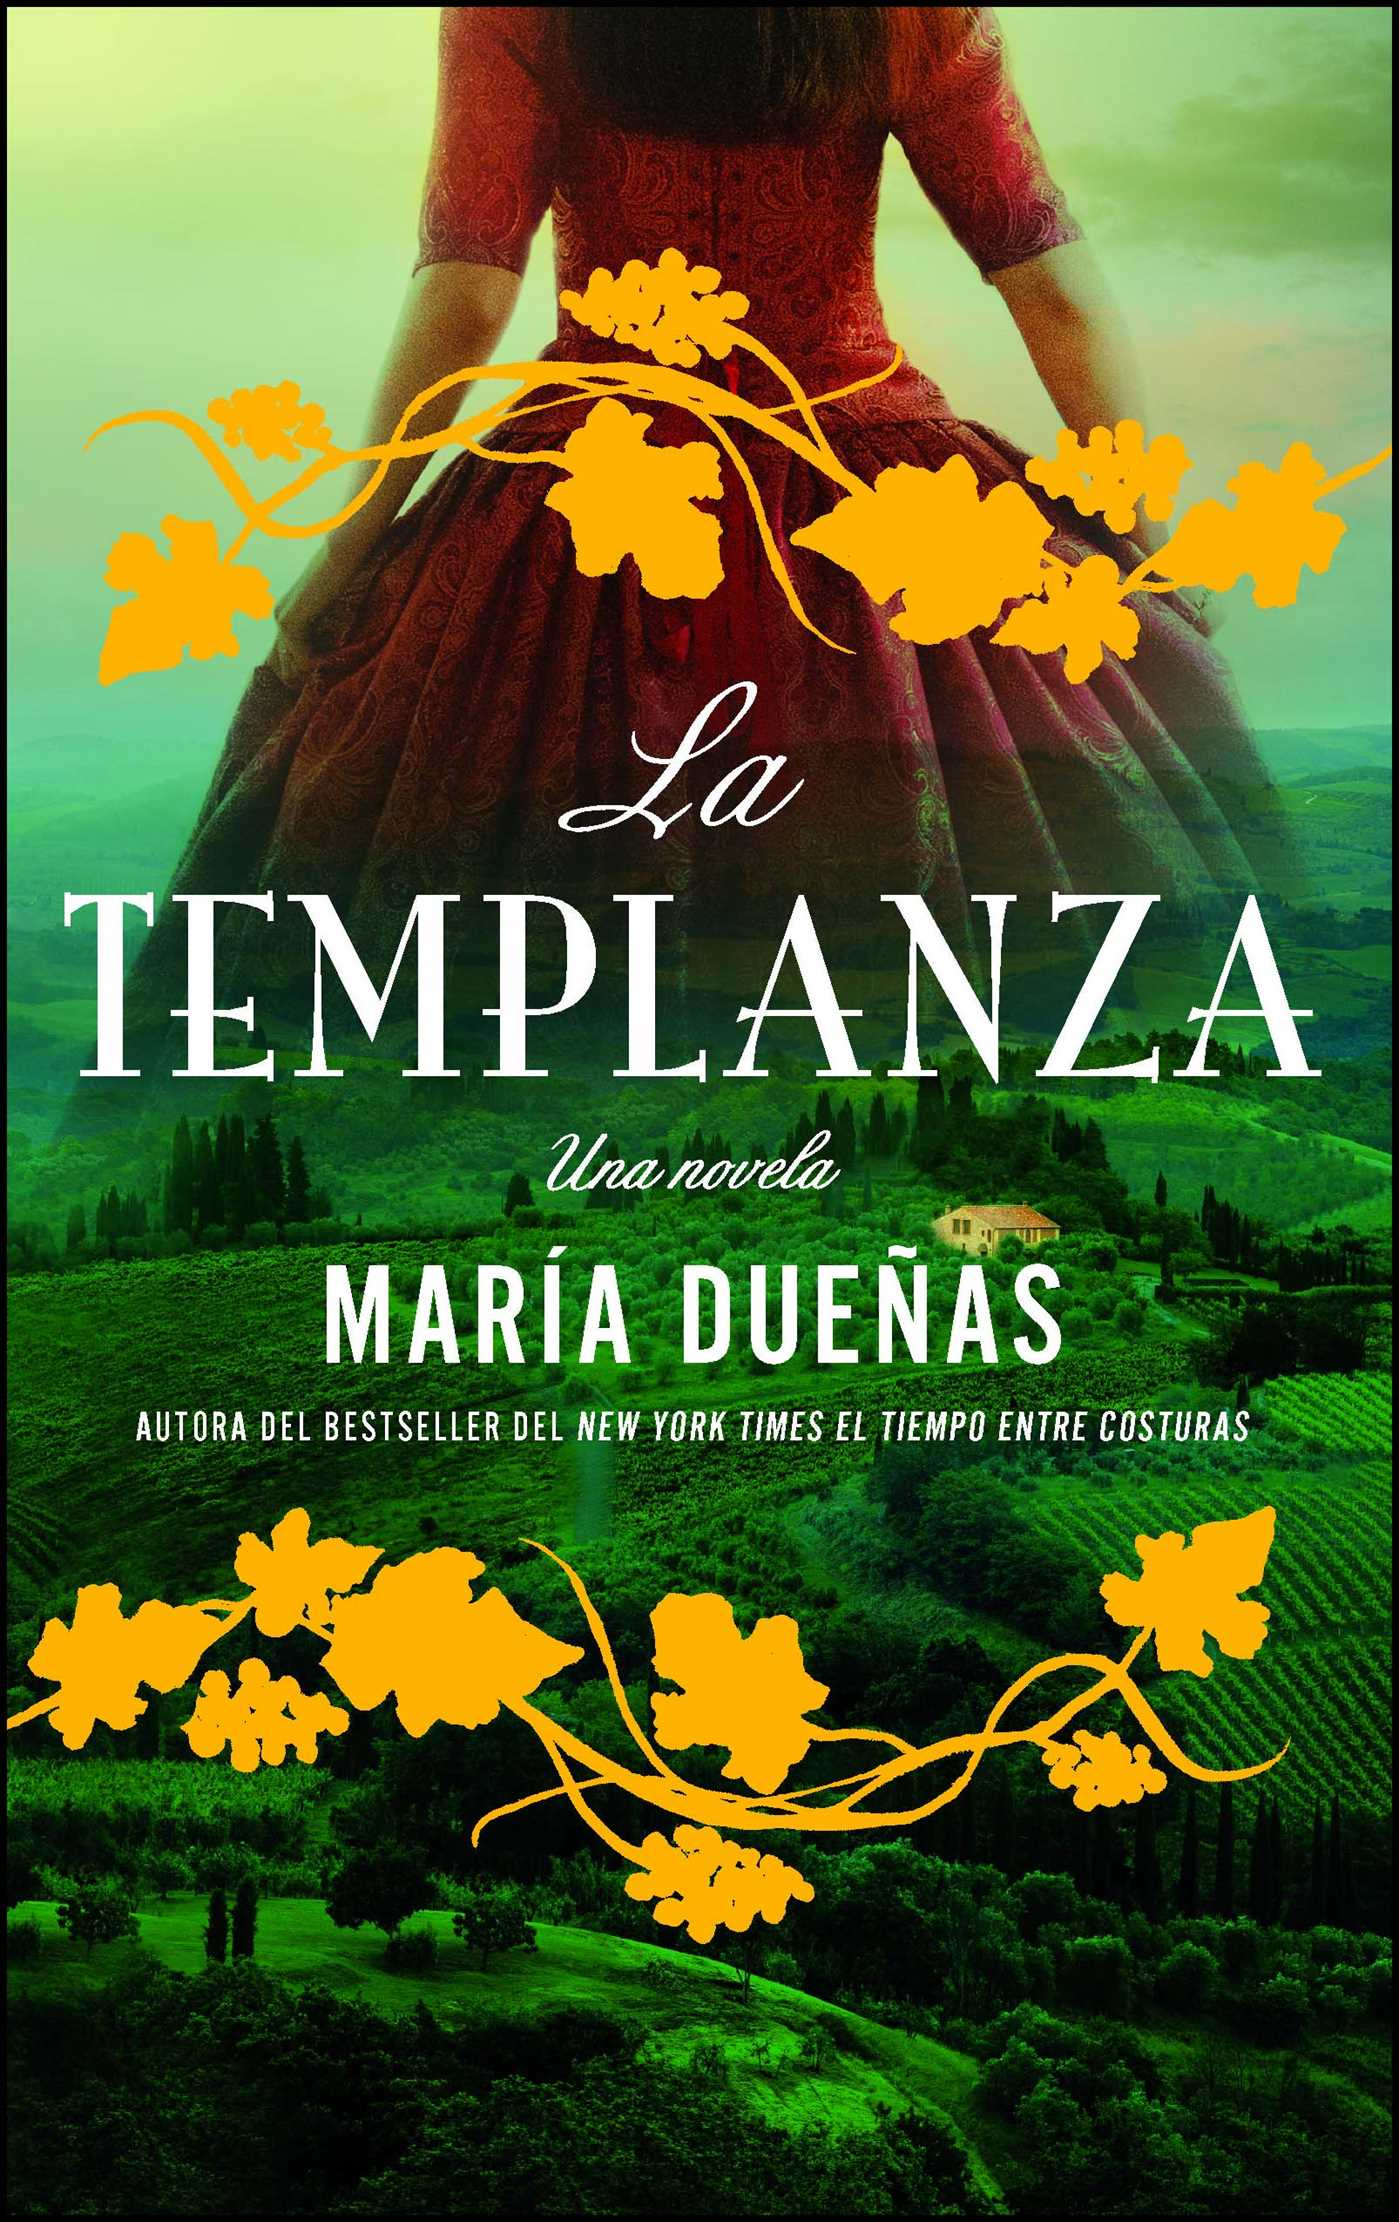 La templanza spanish edition 9781501125195 hr